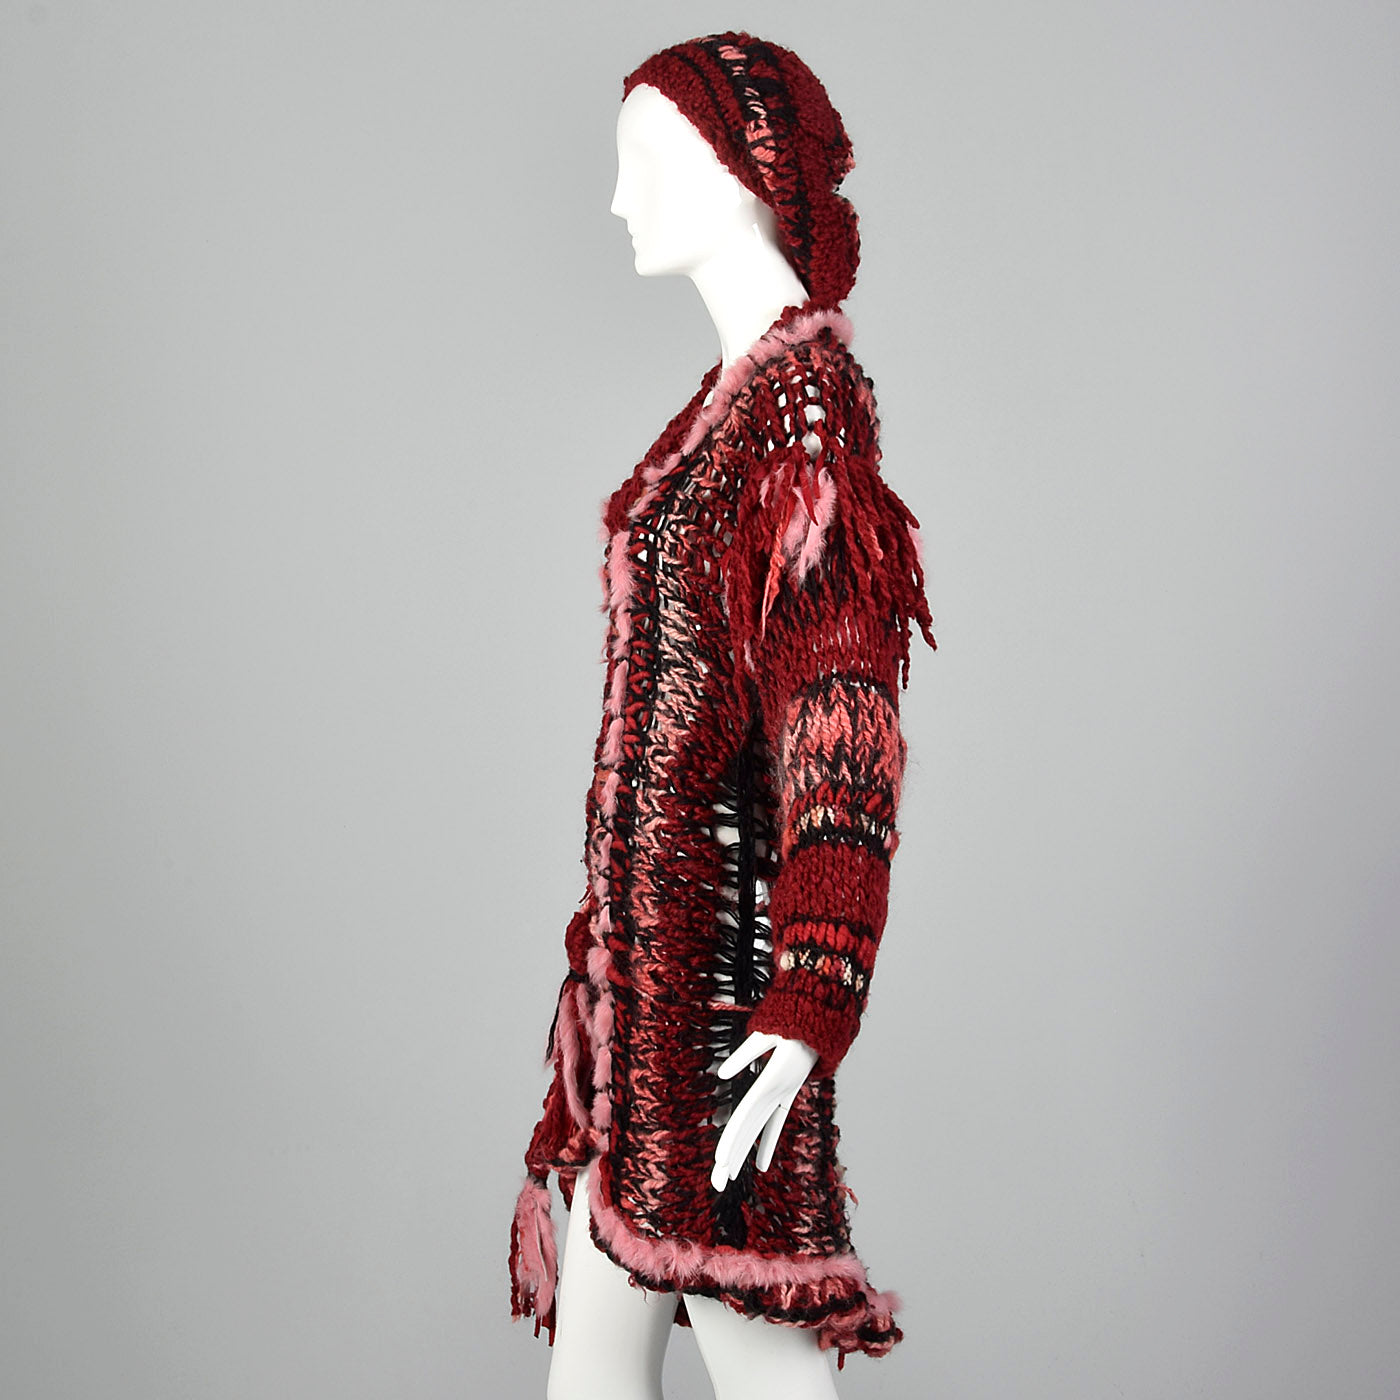 1980s Unique Knit Dress with Matching Beret